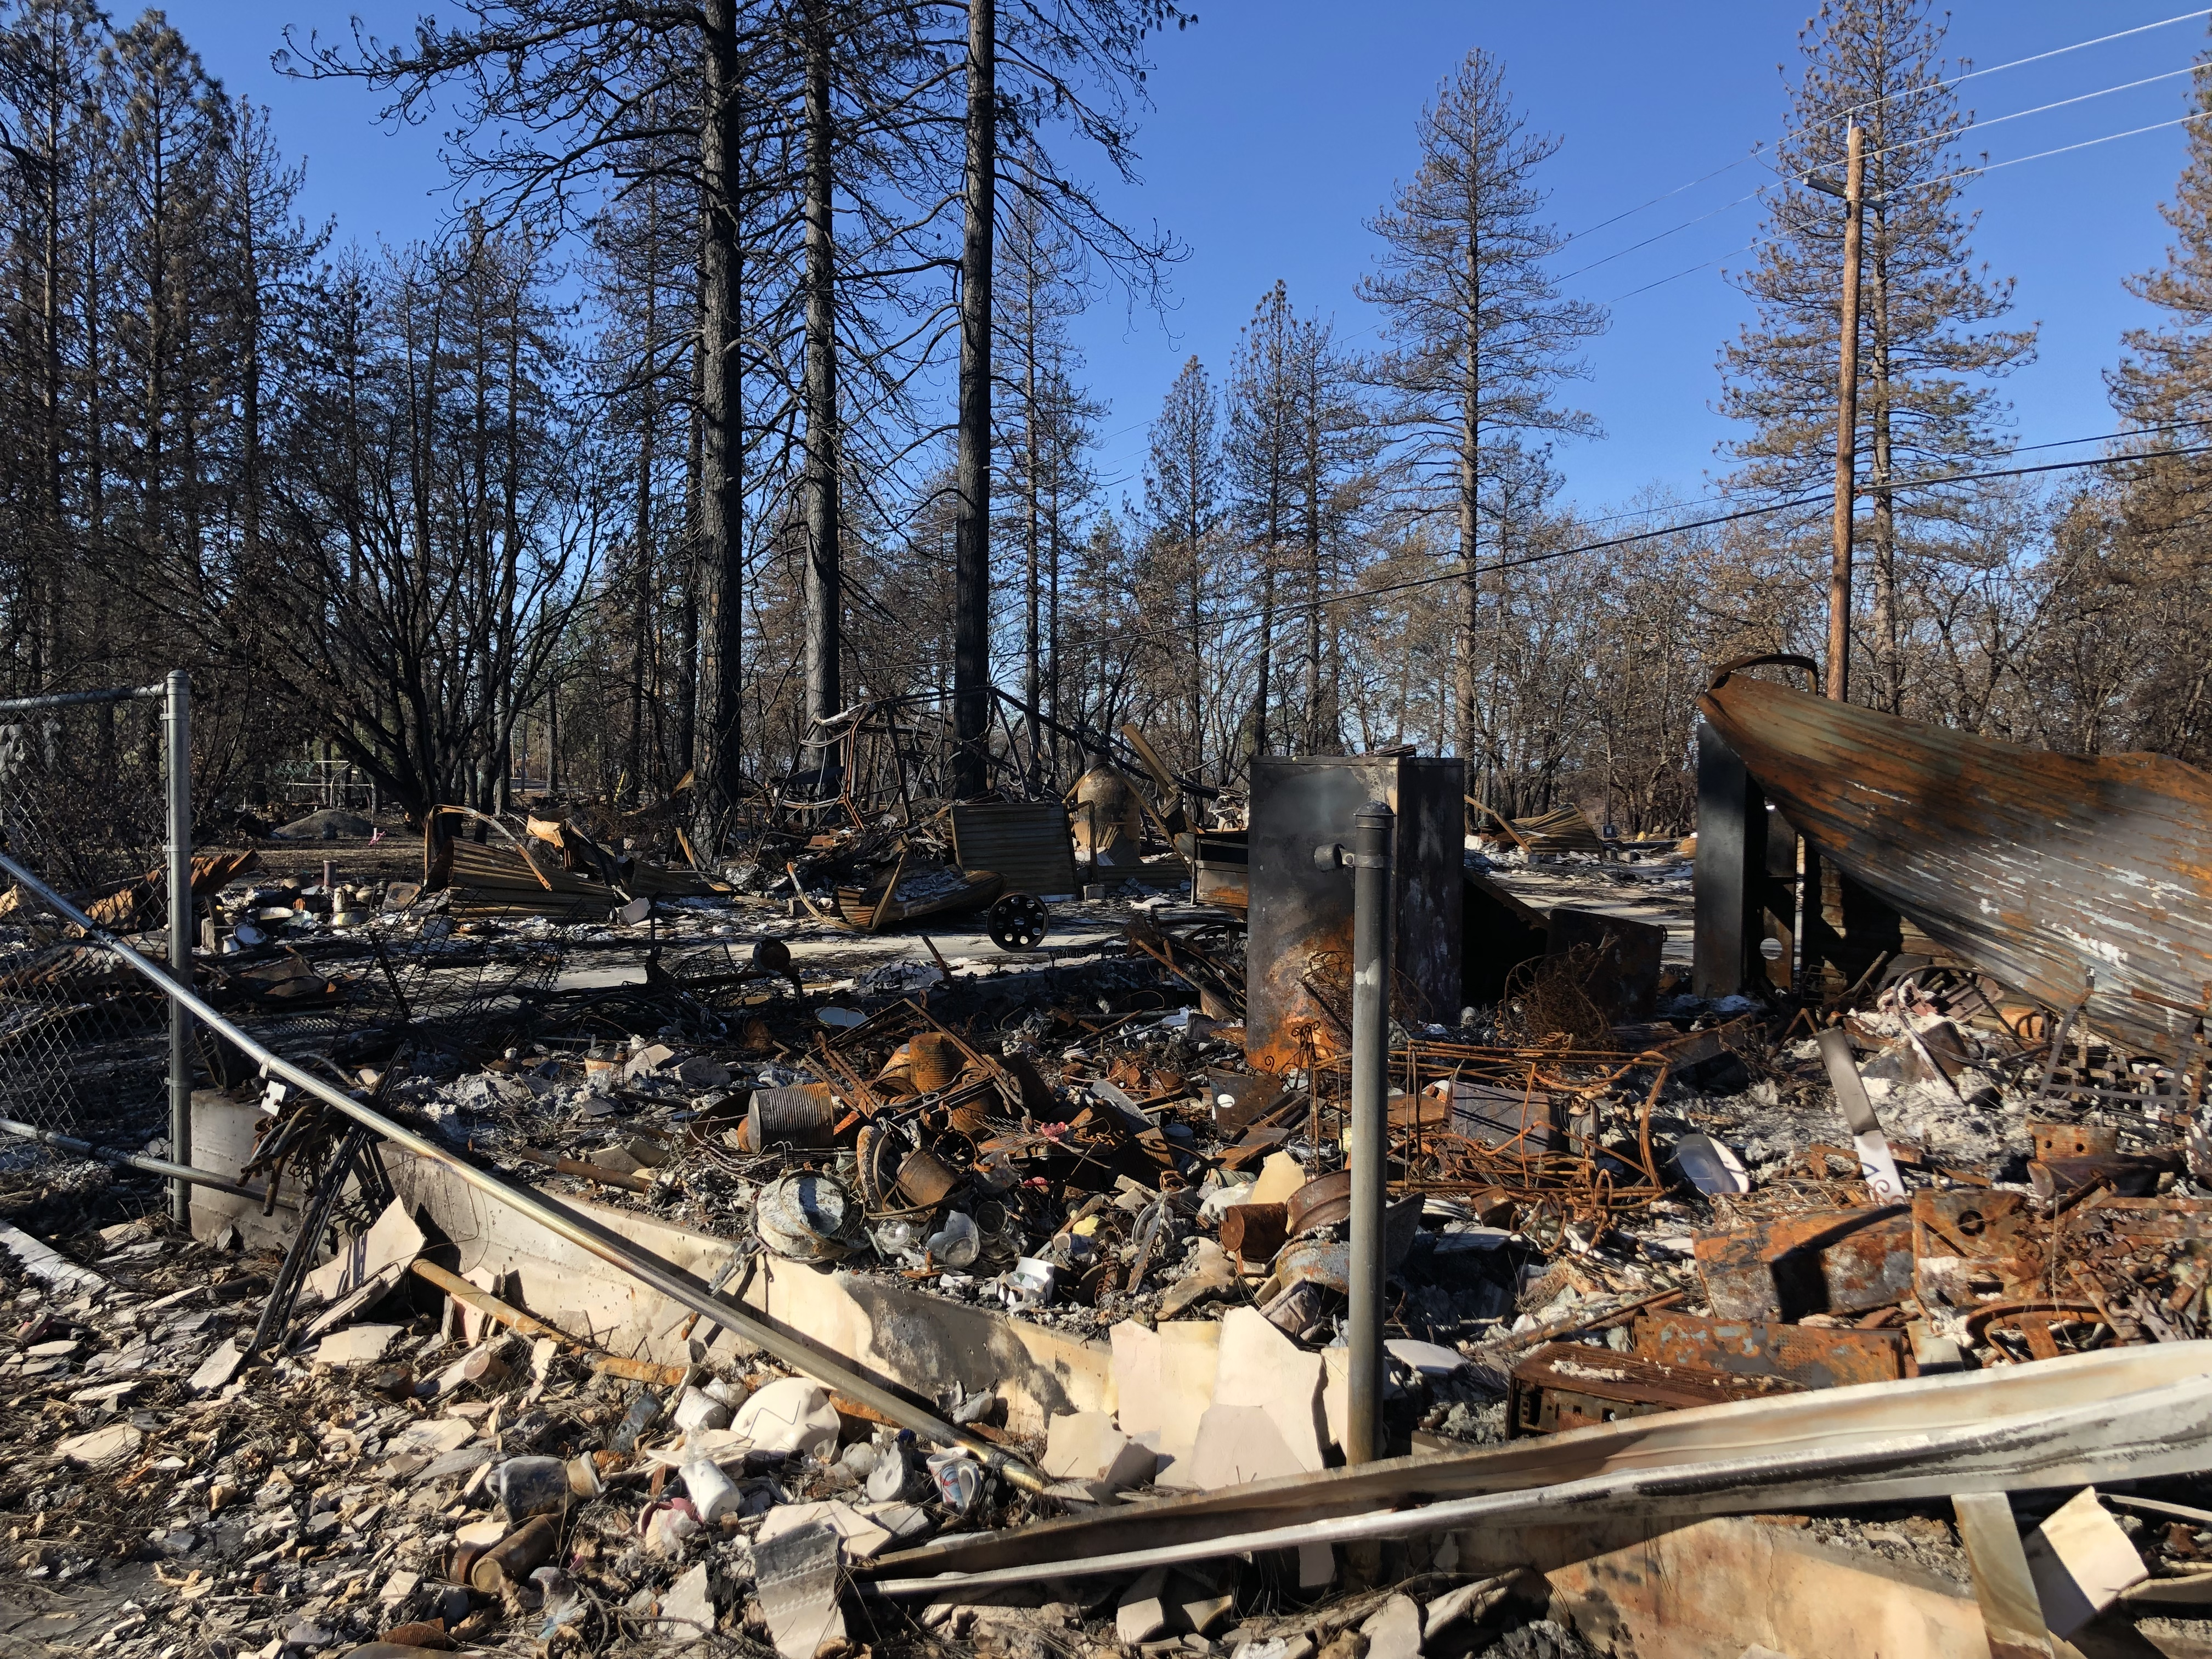 Scenic shot of burned items from the 2018 Camp Fire in Paradise, California. March 2019. Photo by Byrhonda Lyons/CALmatters.